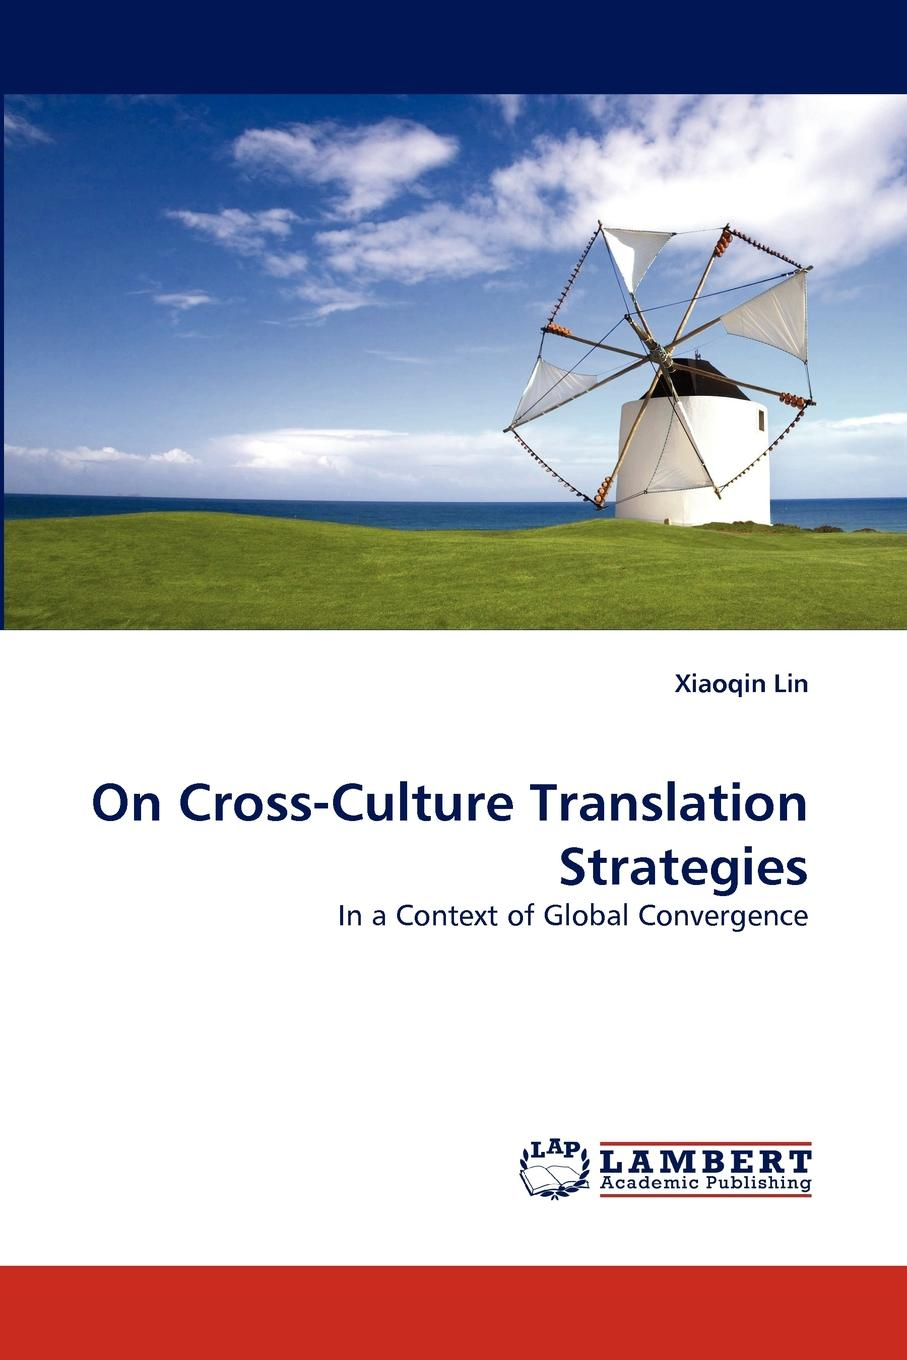 купить Xiaoqin Lin On Cross-Culture Translation Strategies онлайн